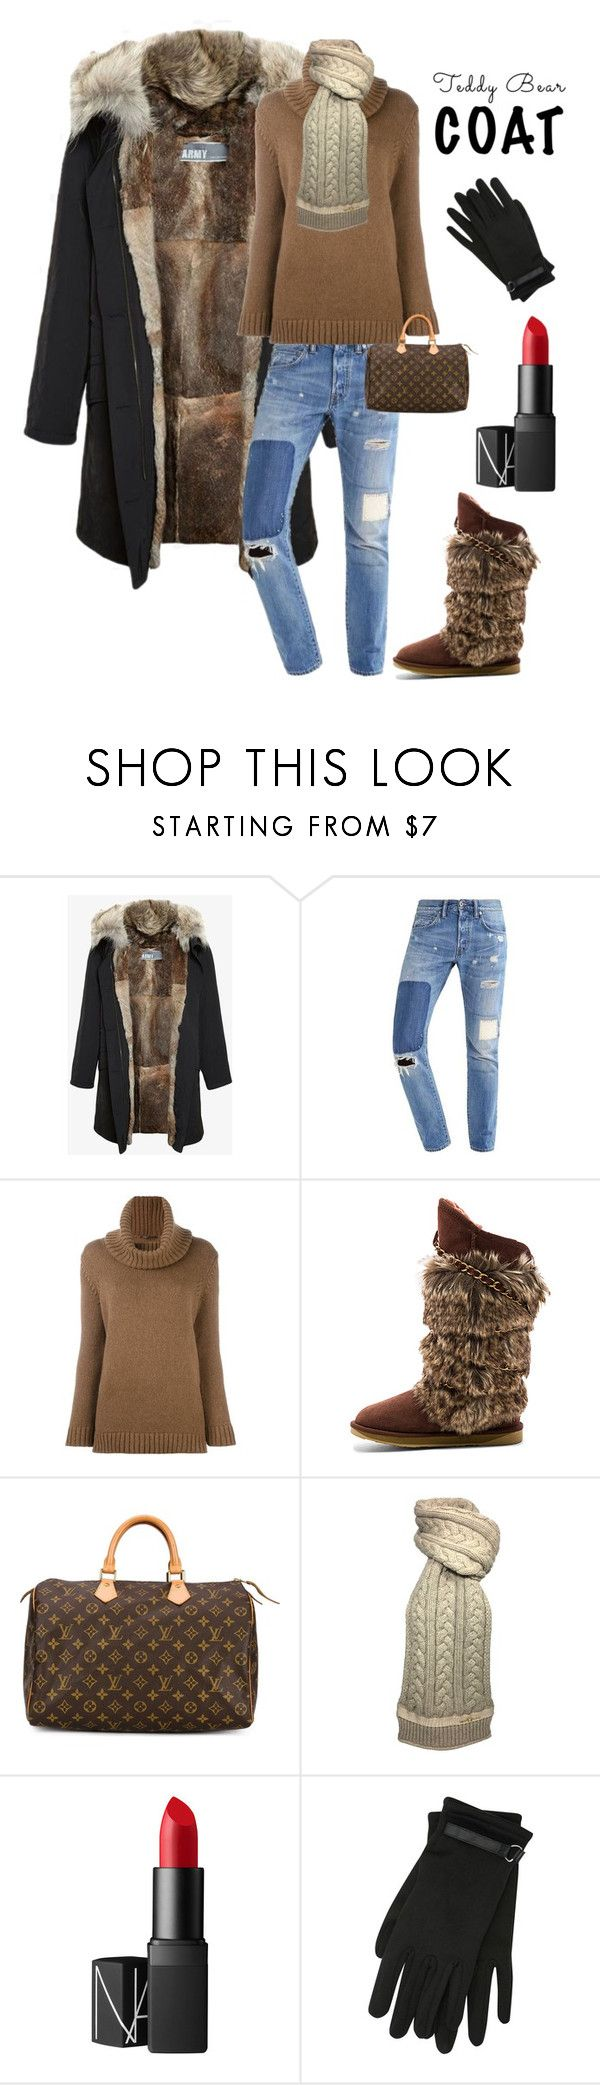 """Untitled #3949"" by kotnourka ❤ liked on Polyvore featuring Army Fur by Yves Salomon, Agnona, Australia Luxe Collective, Louis Vuitton, NARS Cosmetics and M&Co"